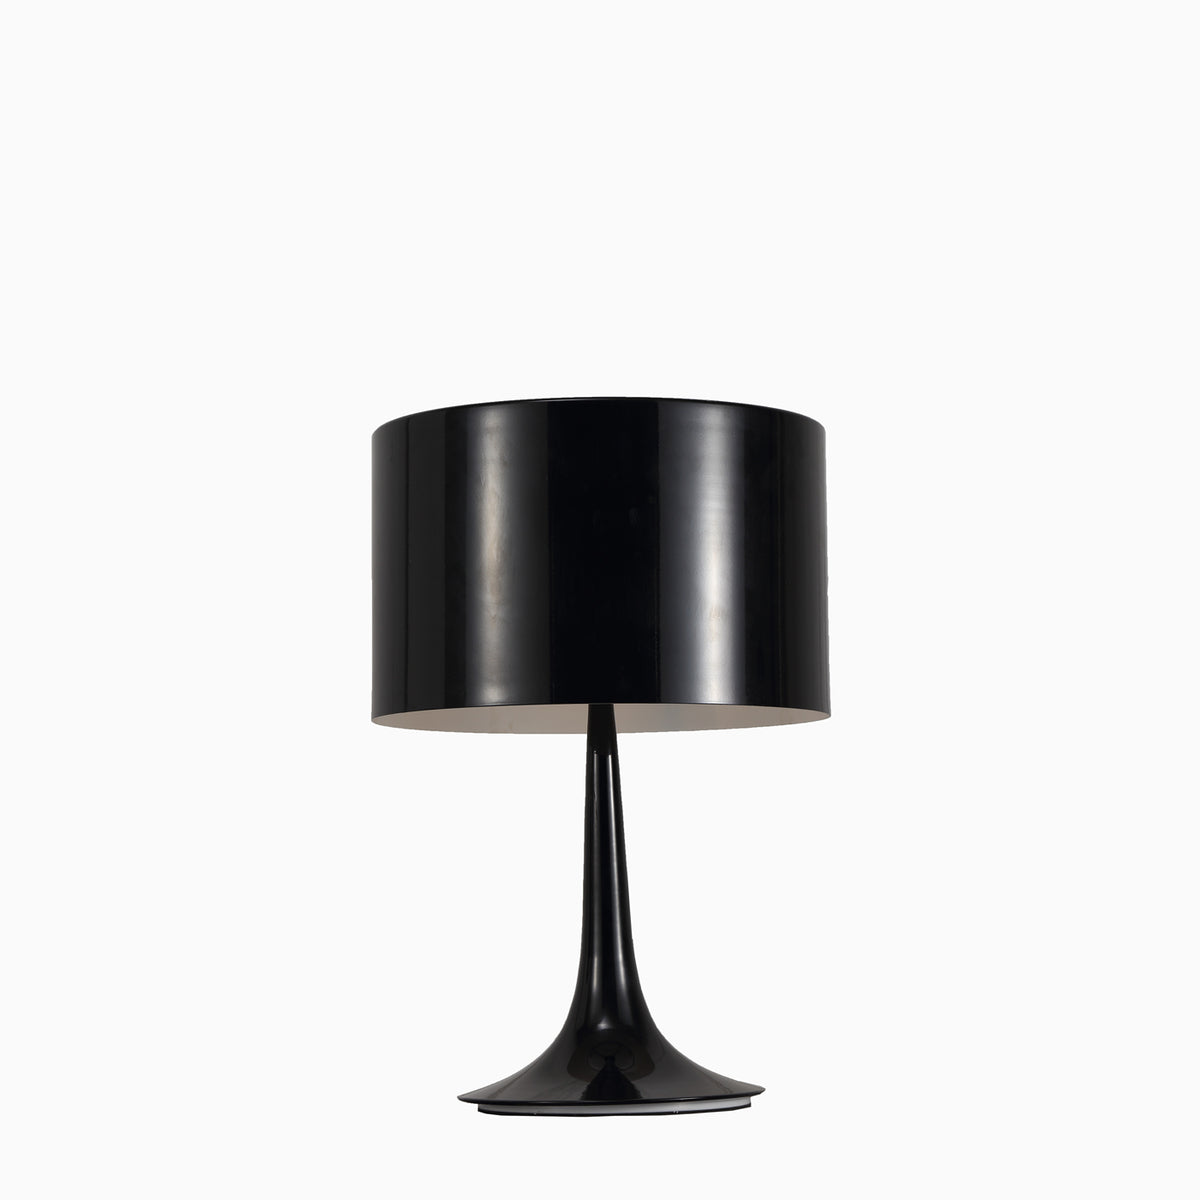 Black Table Lamp - objects of interest